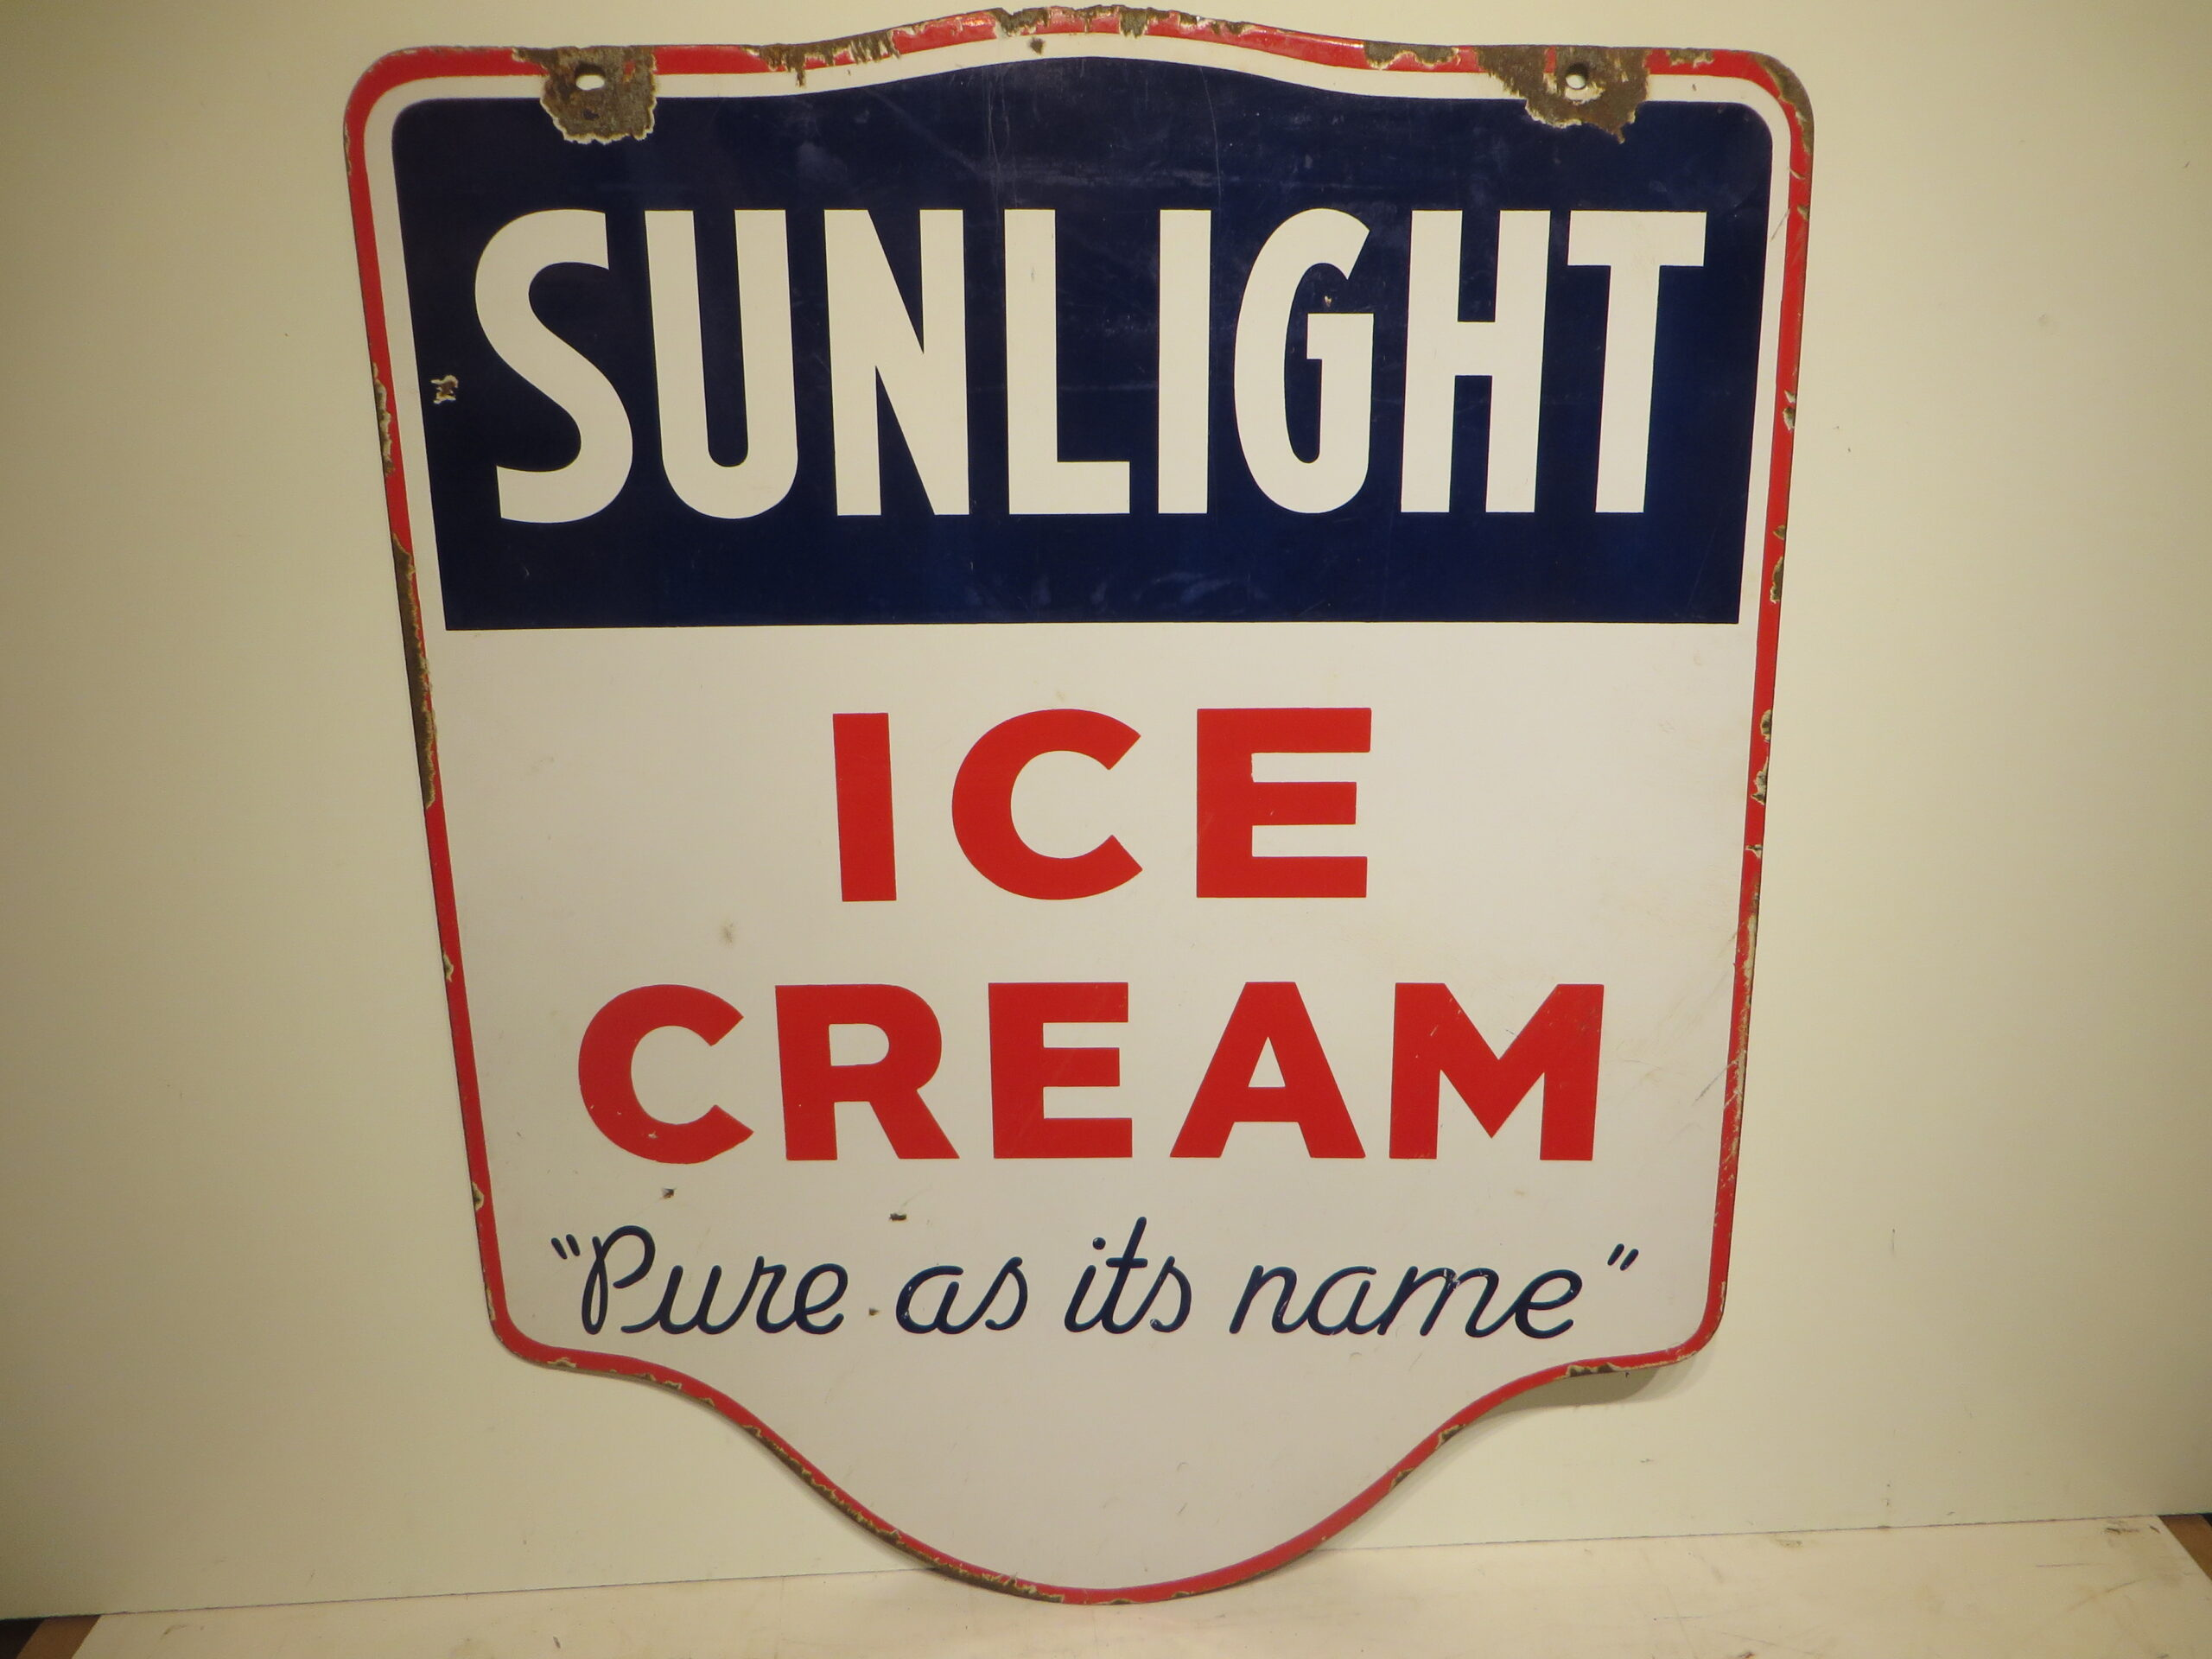 30×24″ DSP 1930 Sunlight Ice Cream Porcelain Sign